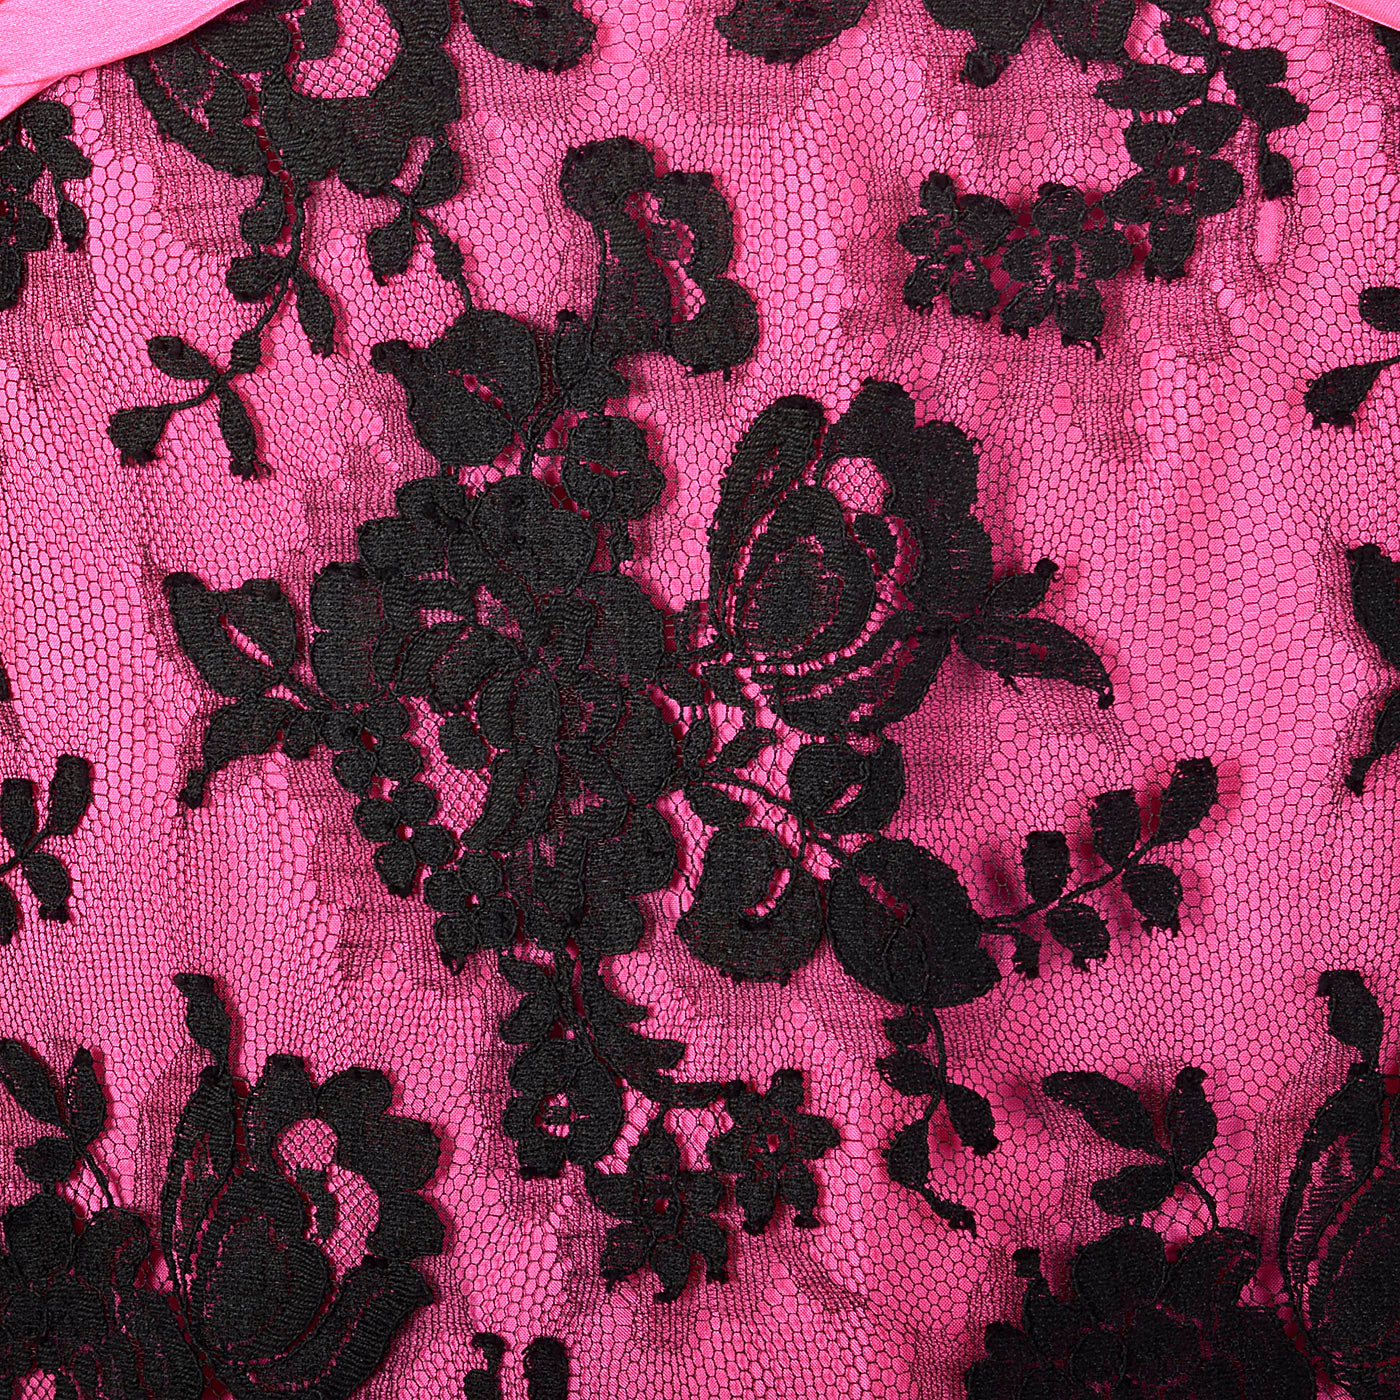 1980s Travilla Hot Pink and Black Lace Dress